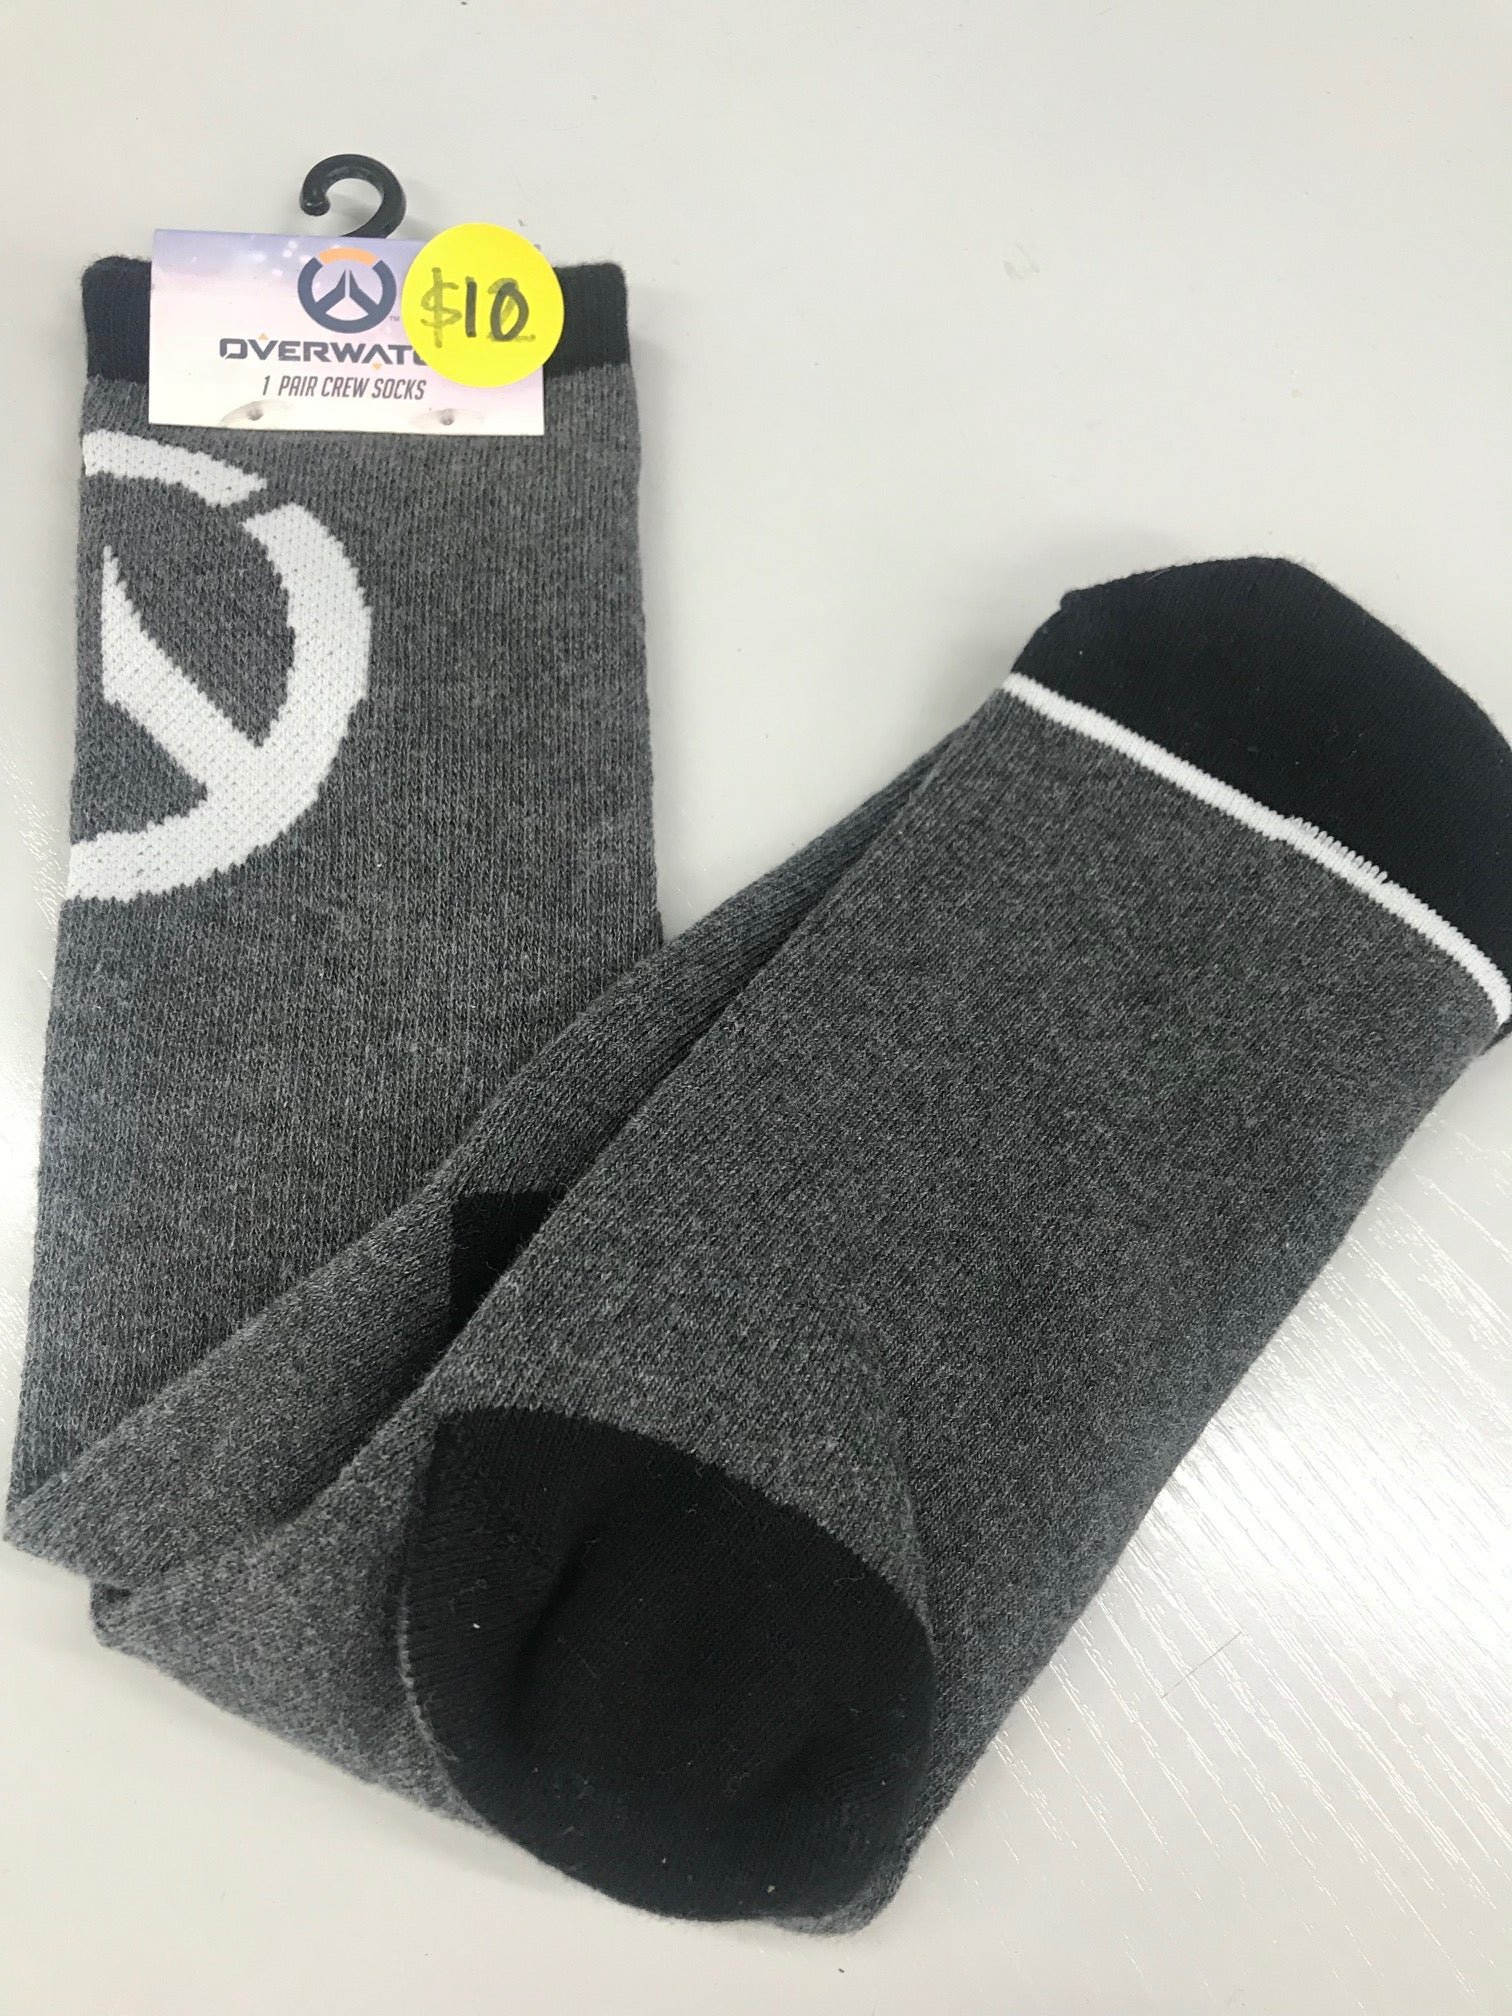 Overwatch Long Socks